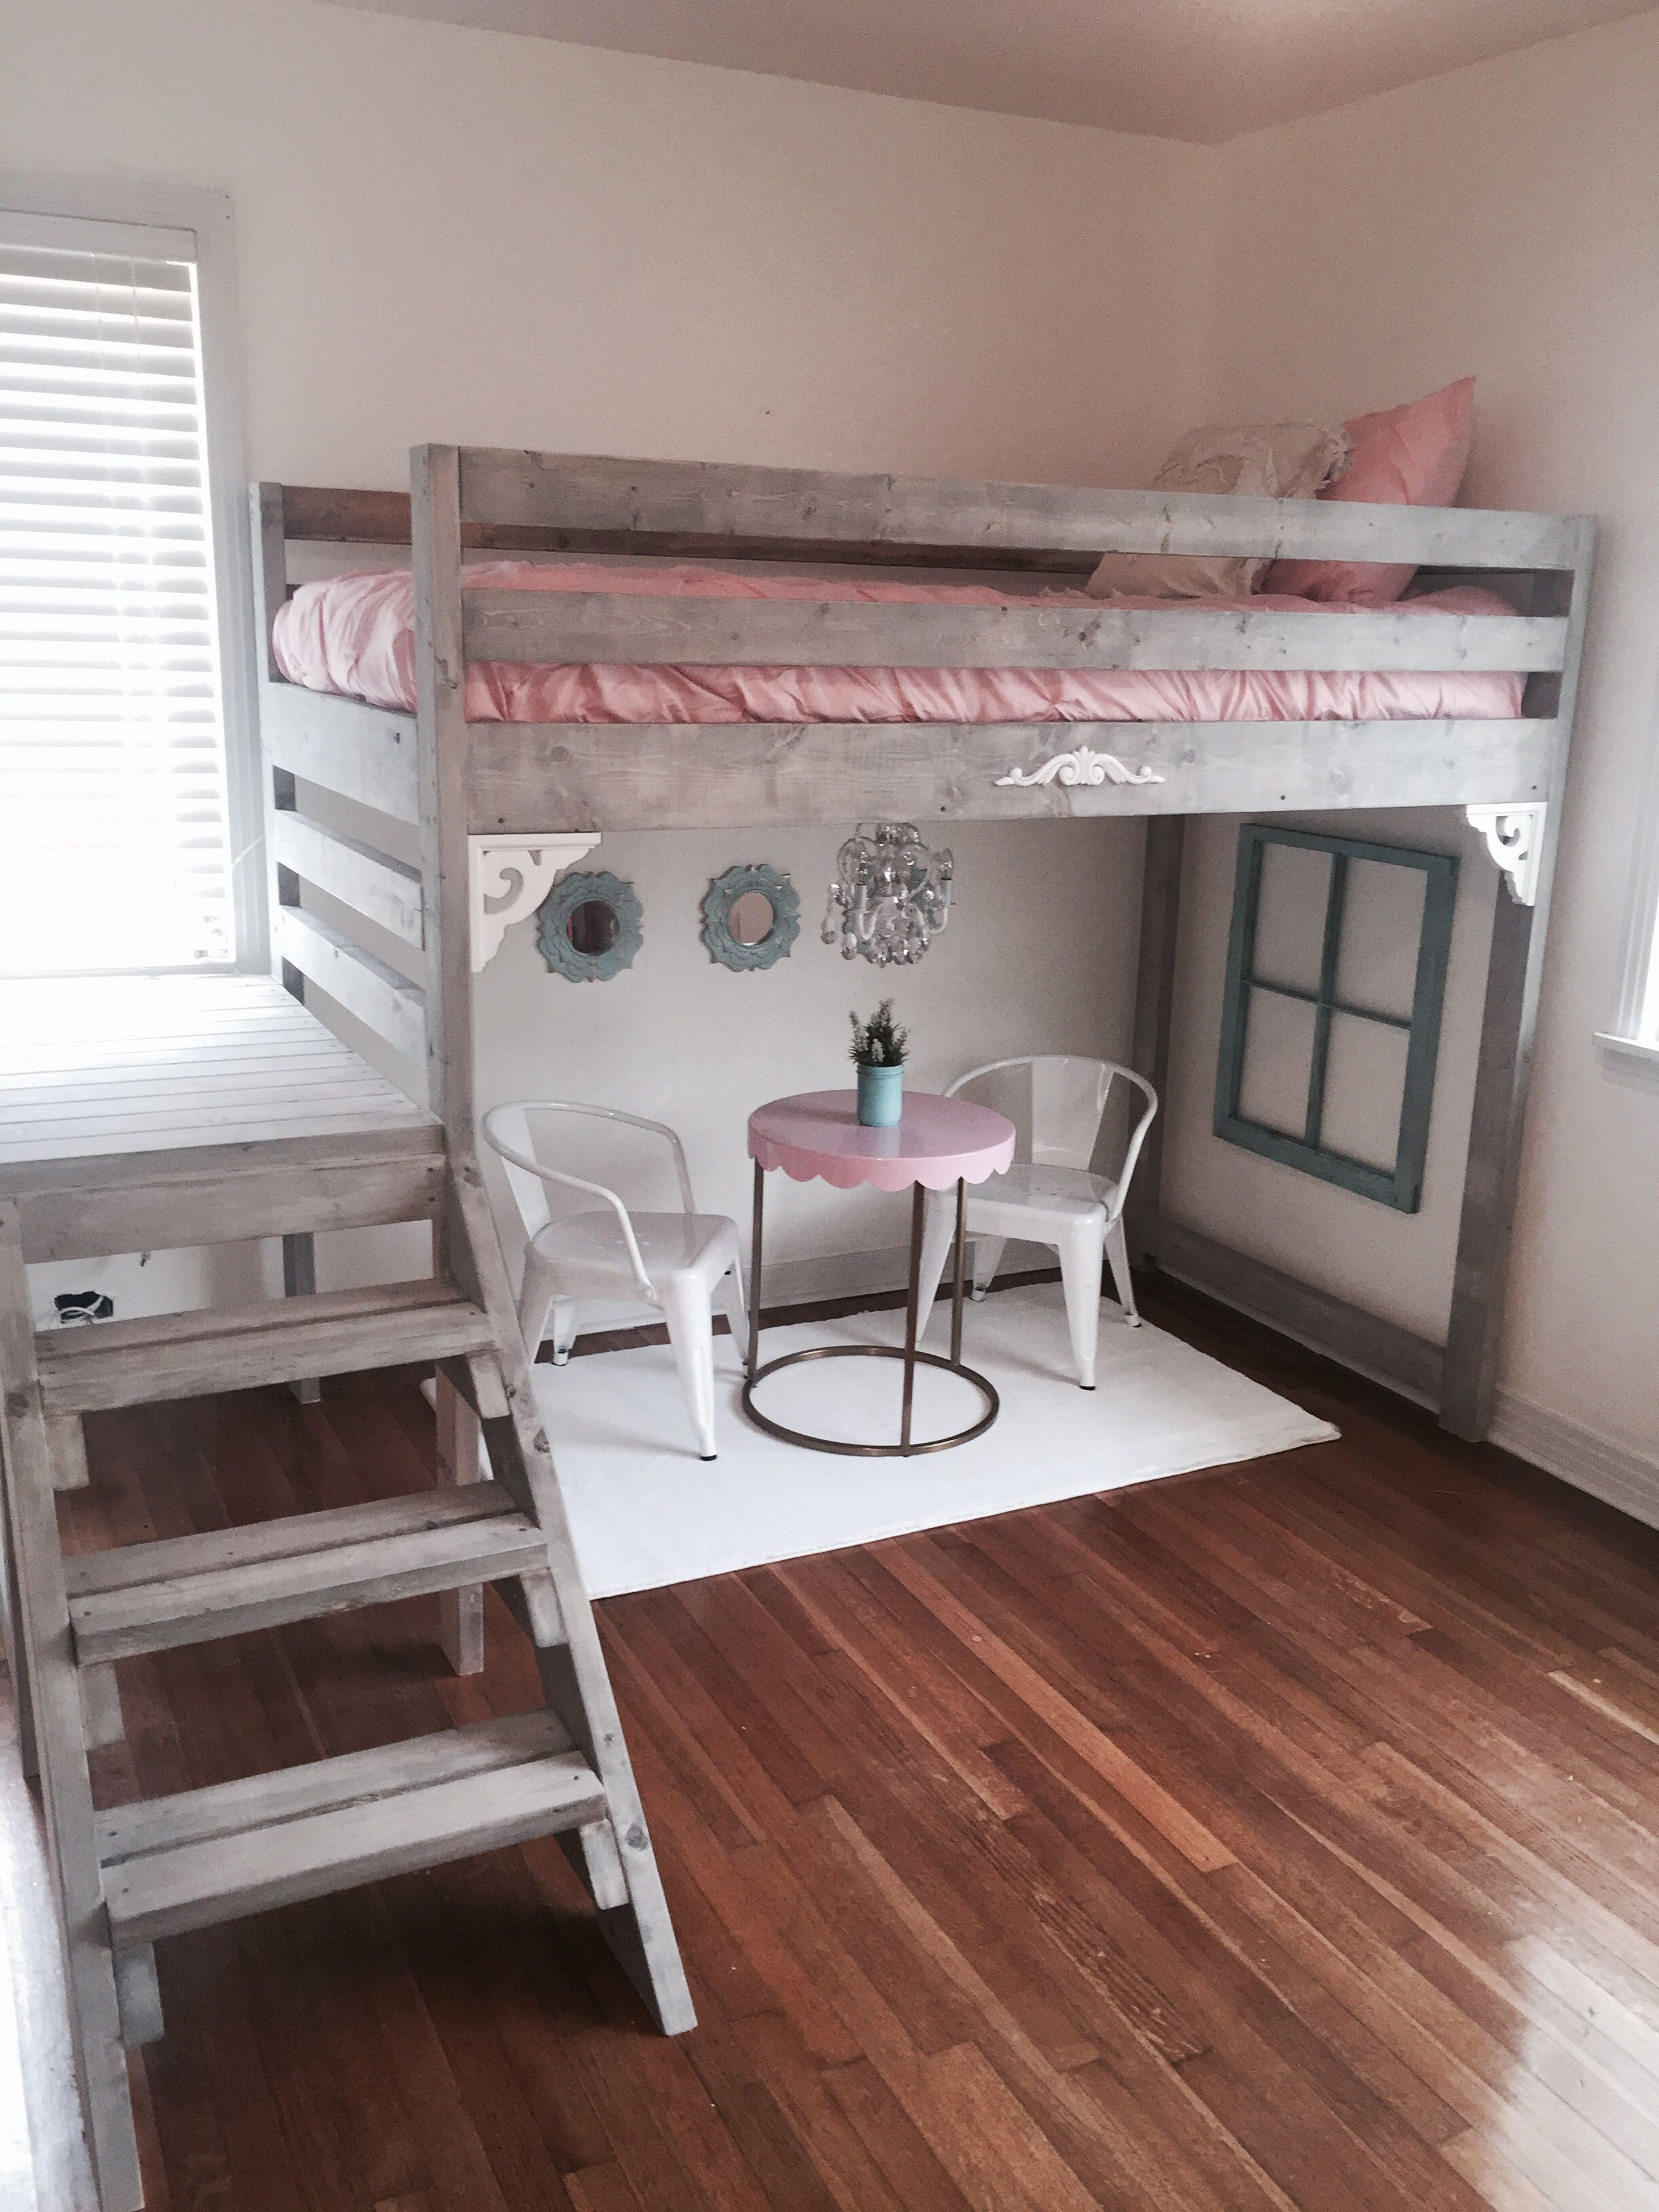 Ana white loft bed i made for my daughters room my decor for Girls bedroom decorating ideas with bunk beds